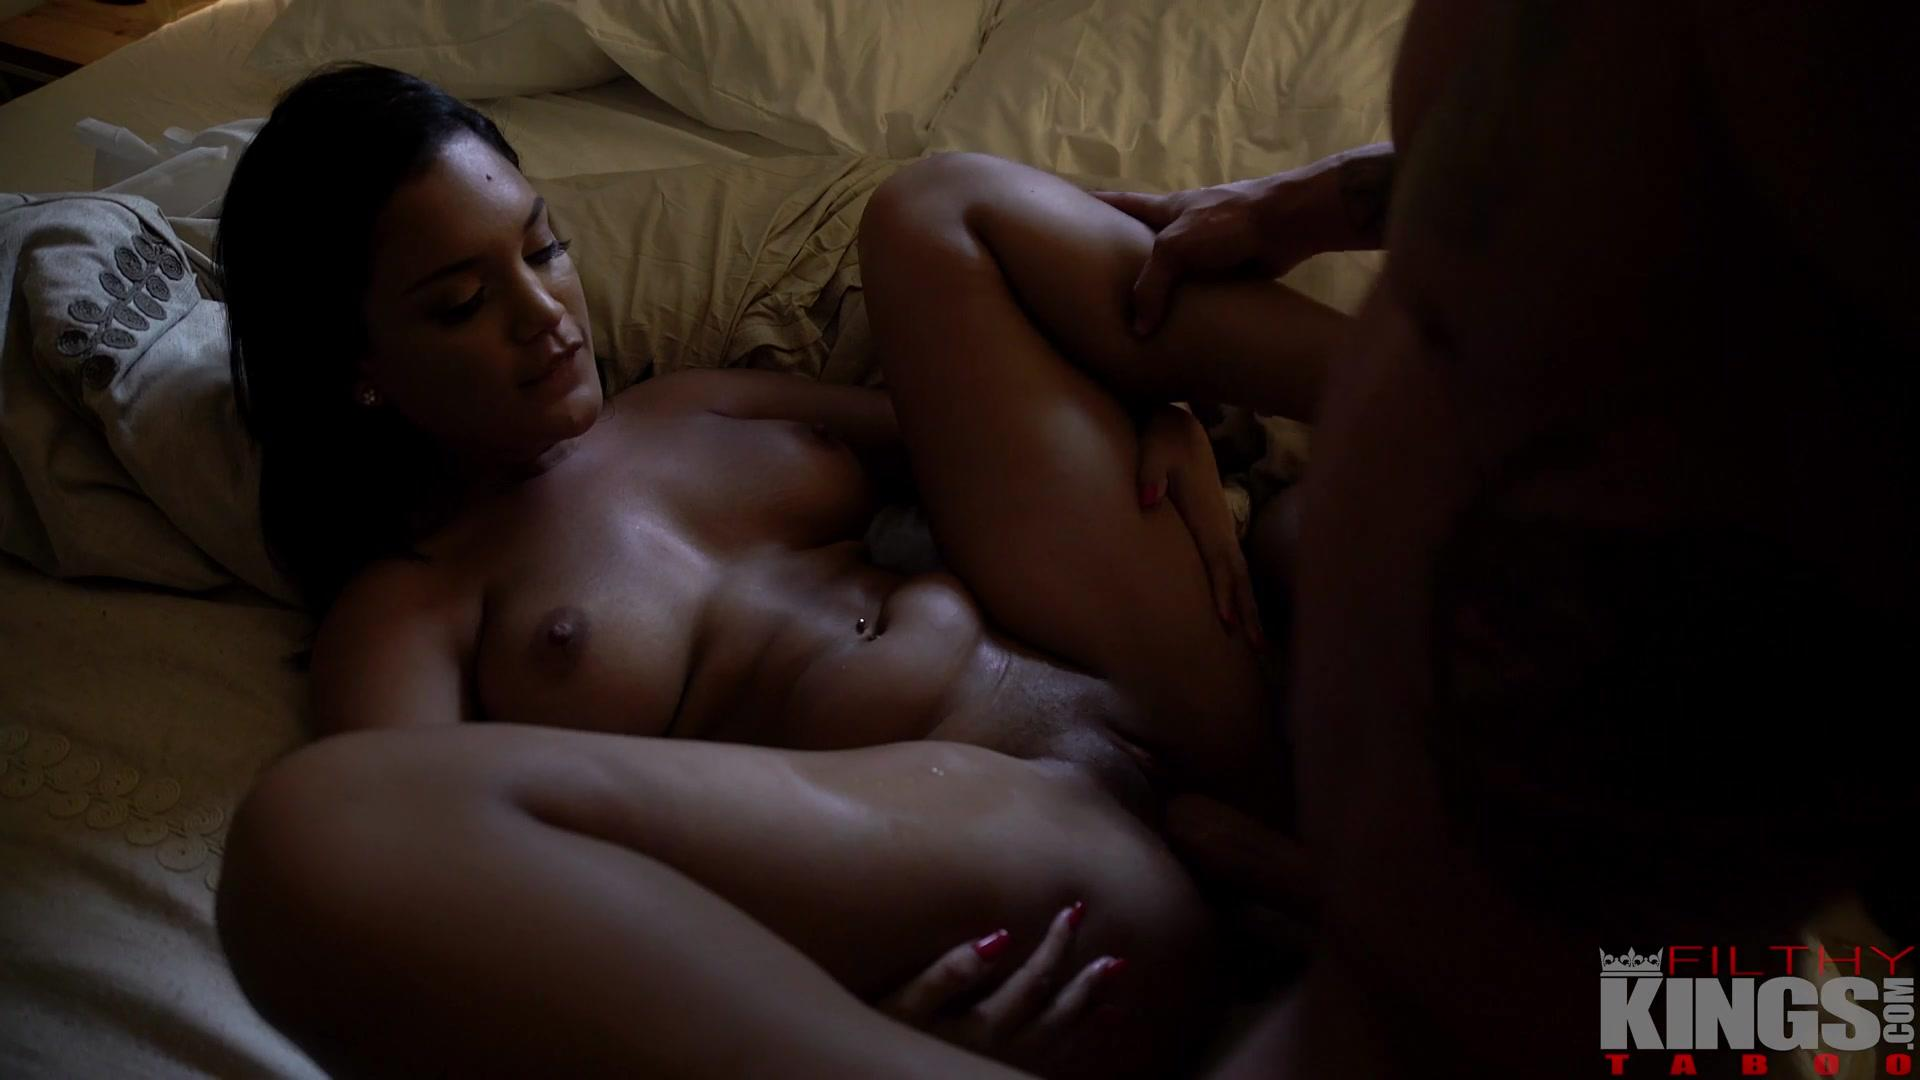 Filthy Taboo – Alina Belle